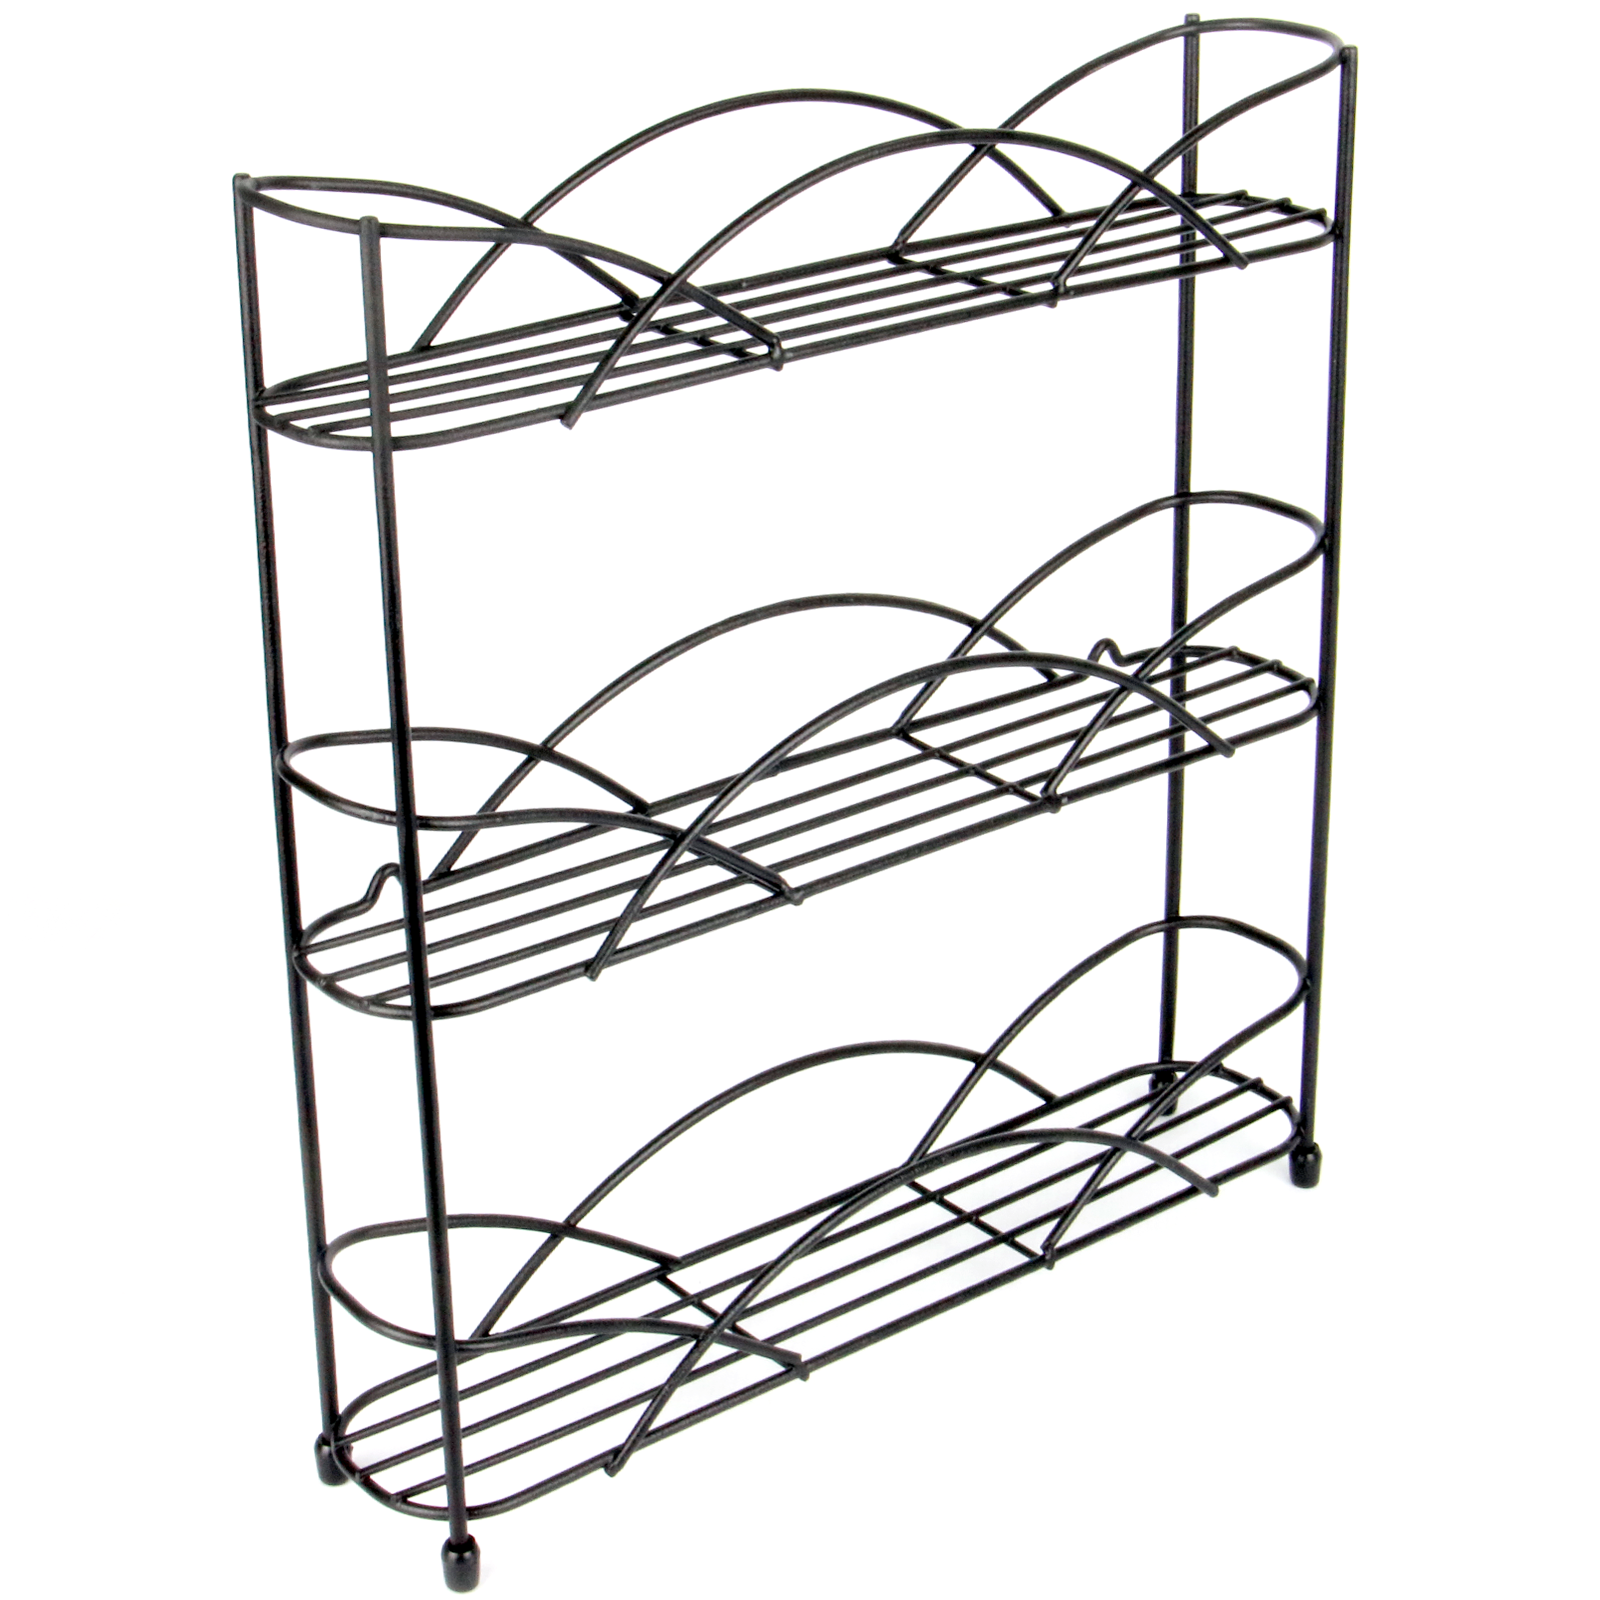 Free-Standing-3-Tier-Herb-amp-Spice-Rack-Non-slip-Universal-Fit-M-amp-W thumbnail 12